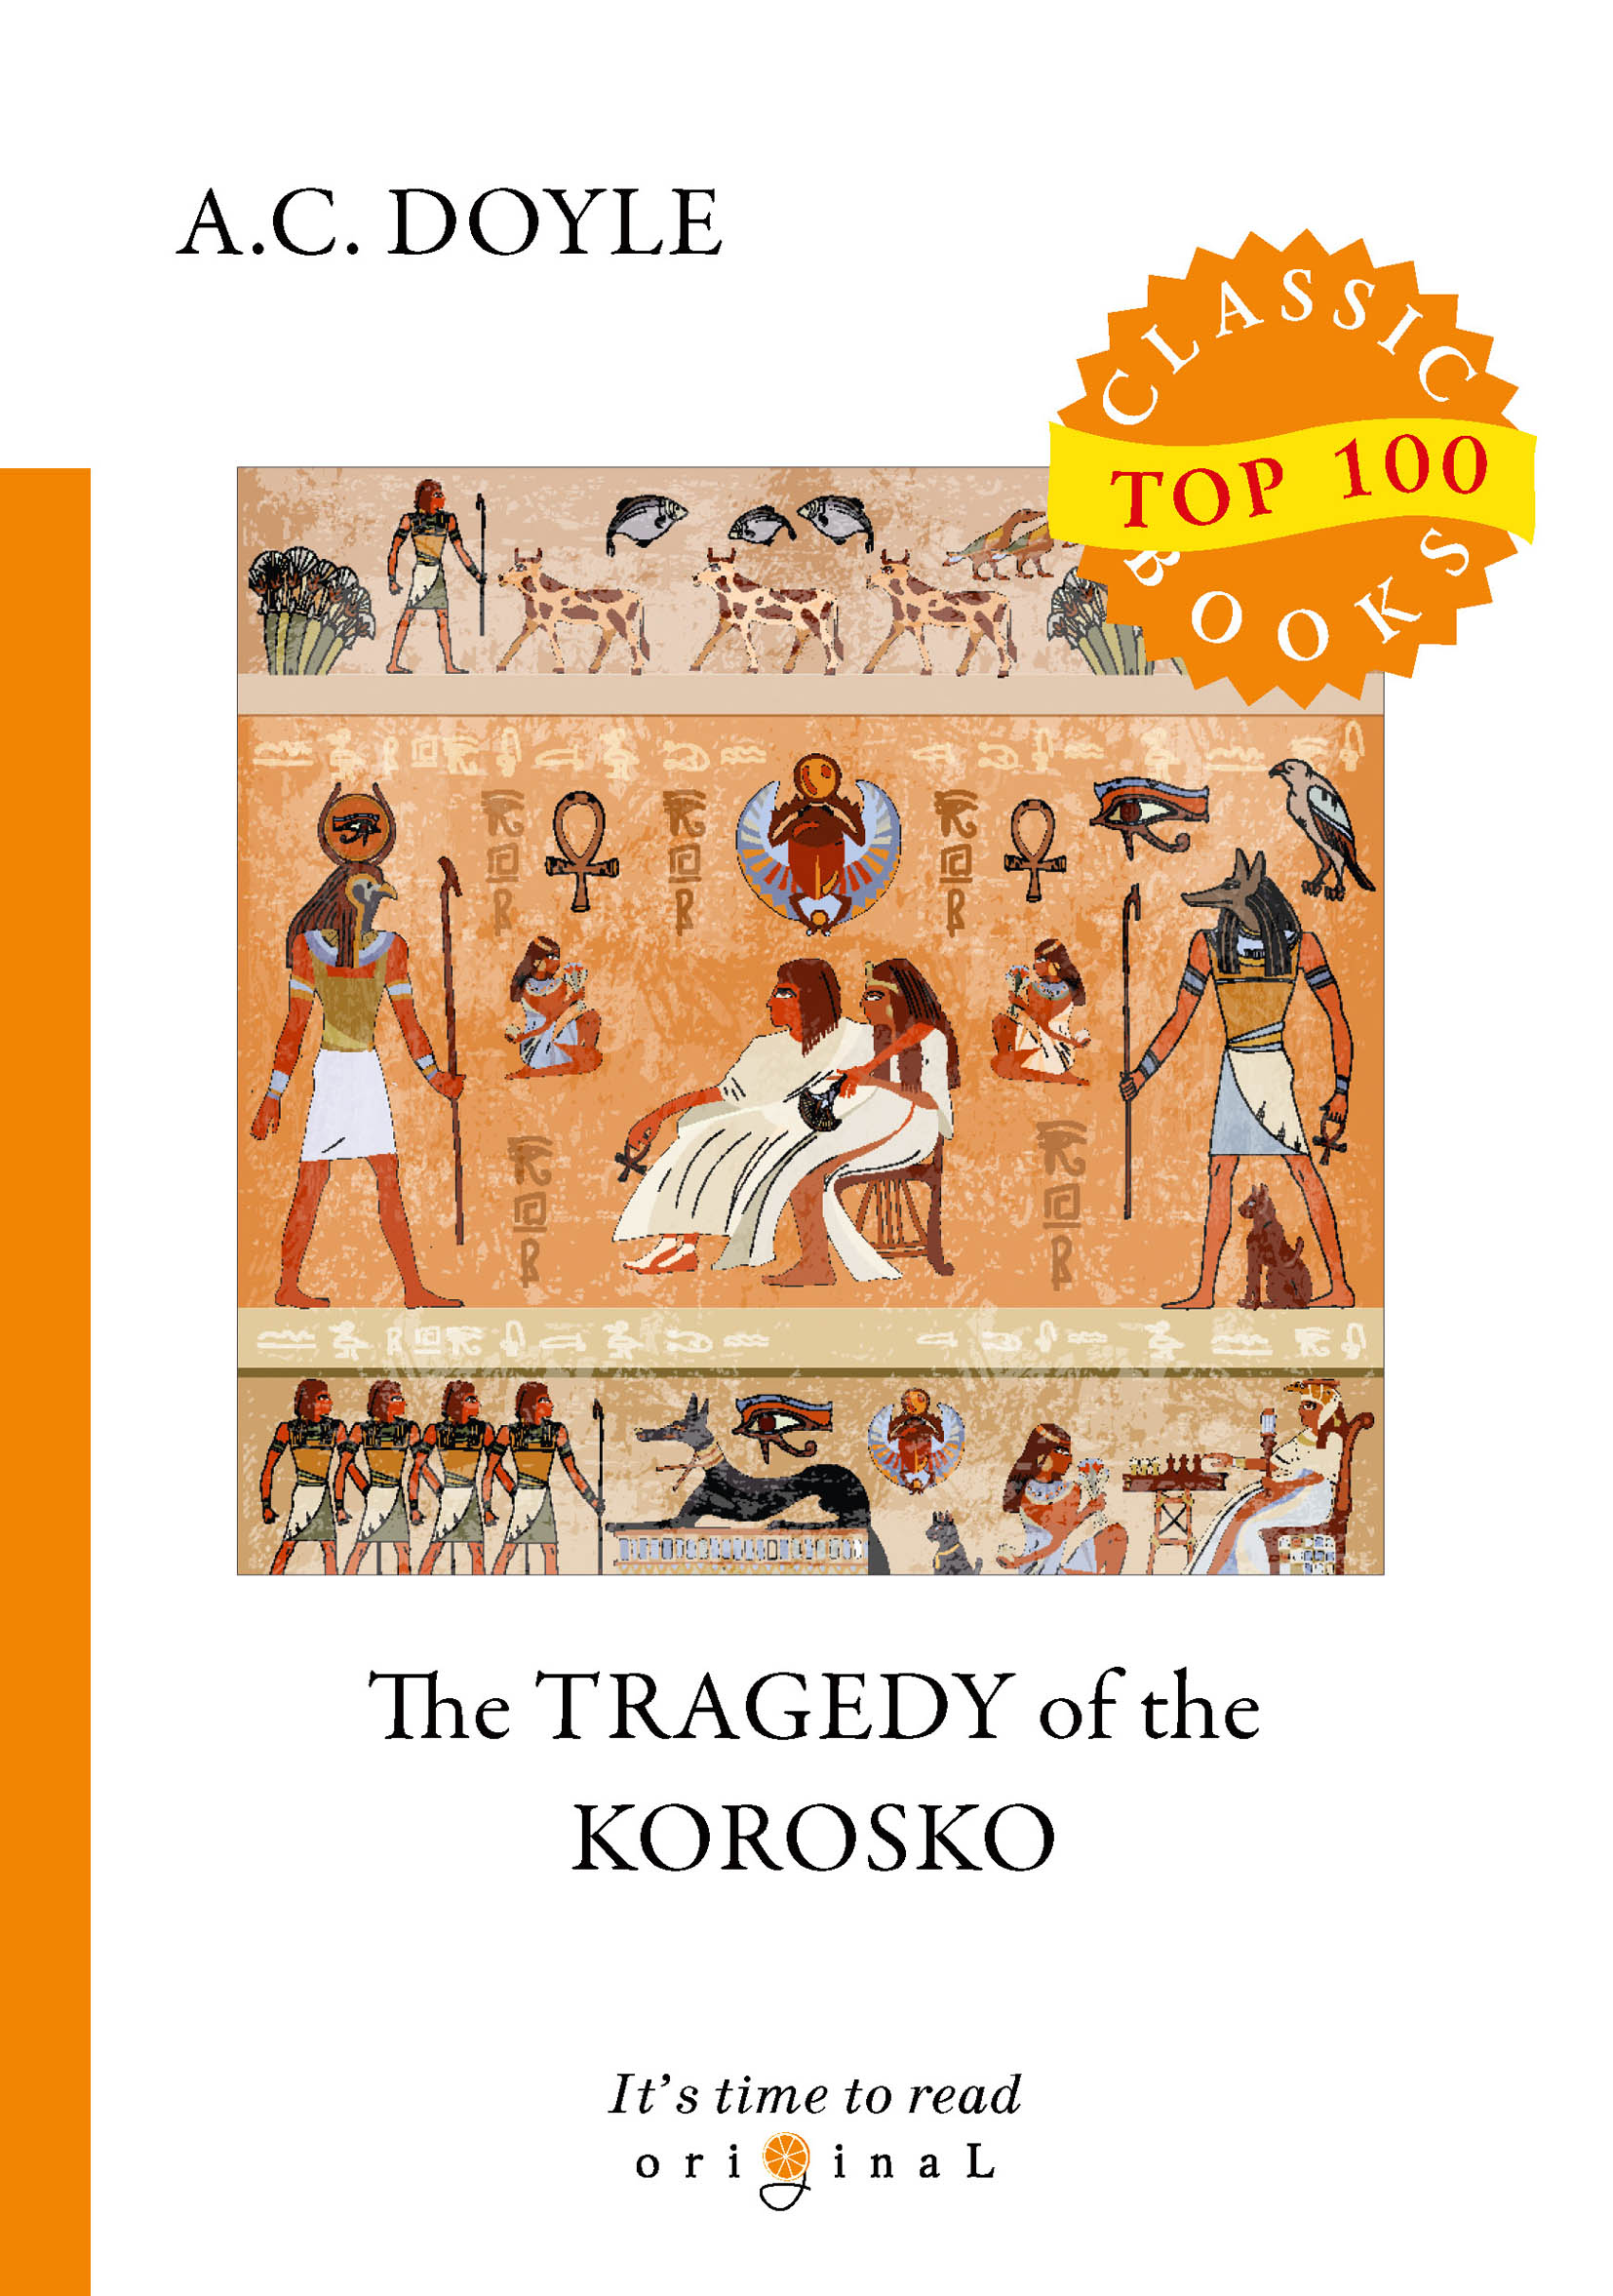 A. C. Doyle The Tragedy of The Korosko